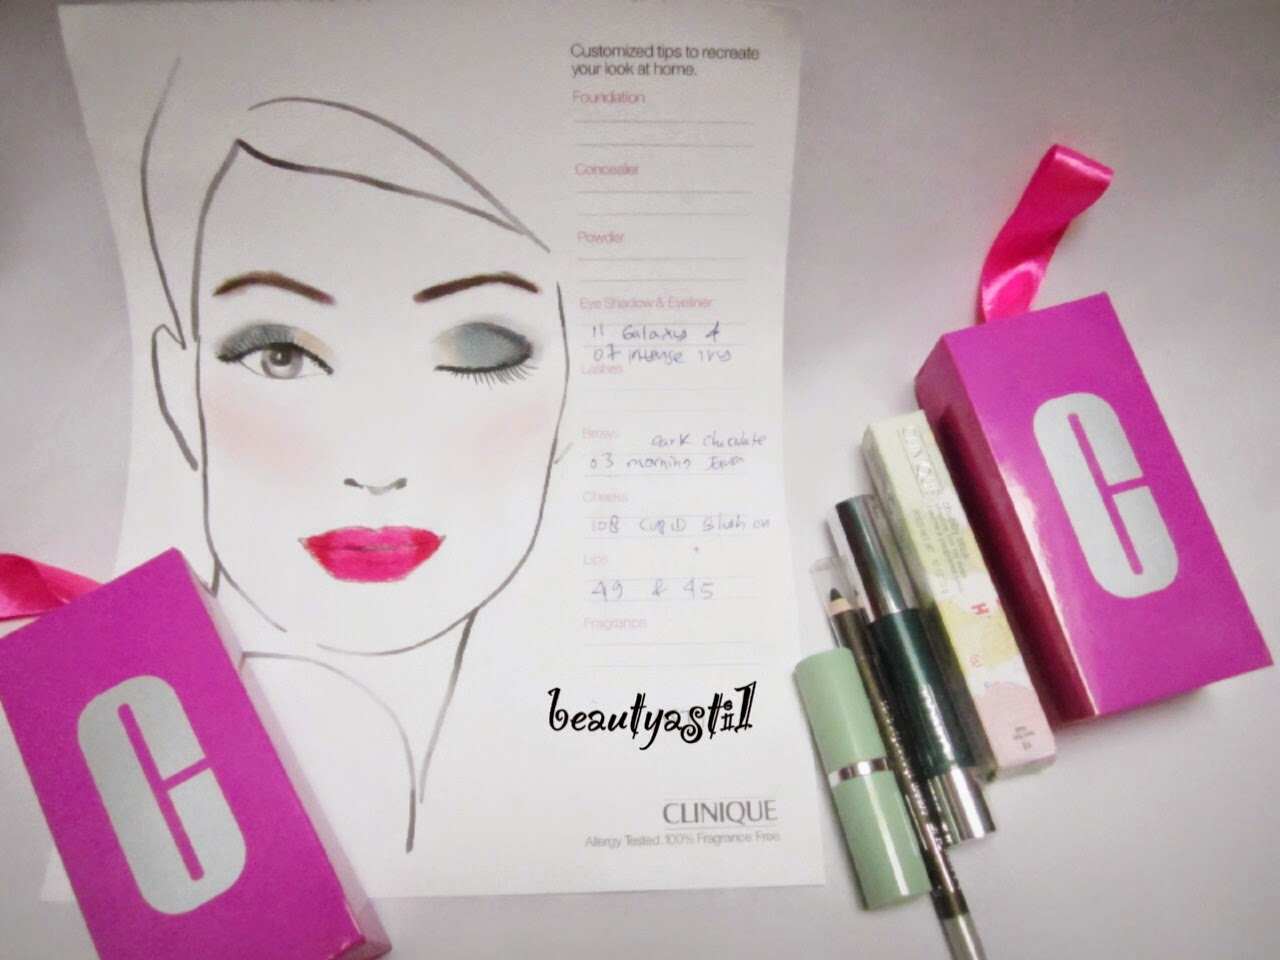 goodie-bag-from-beauty-event-with-clinique.jpg